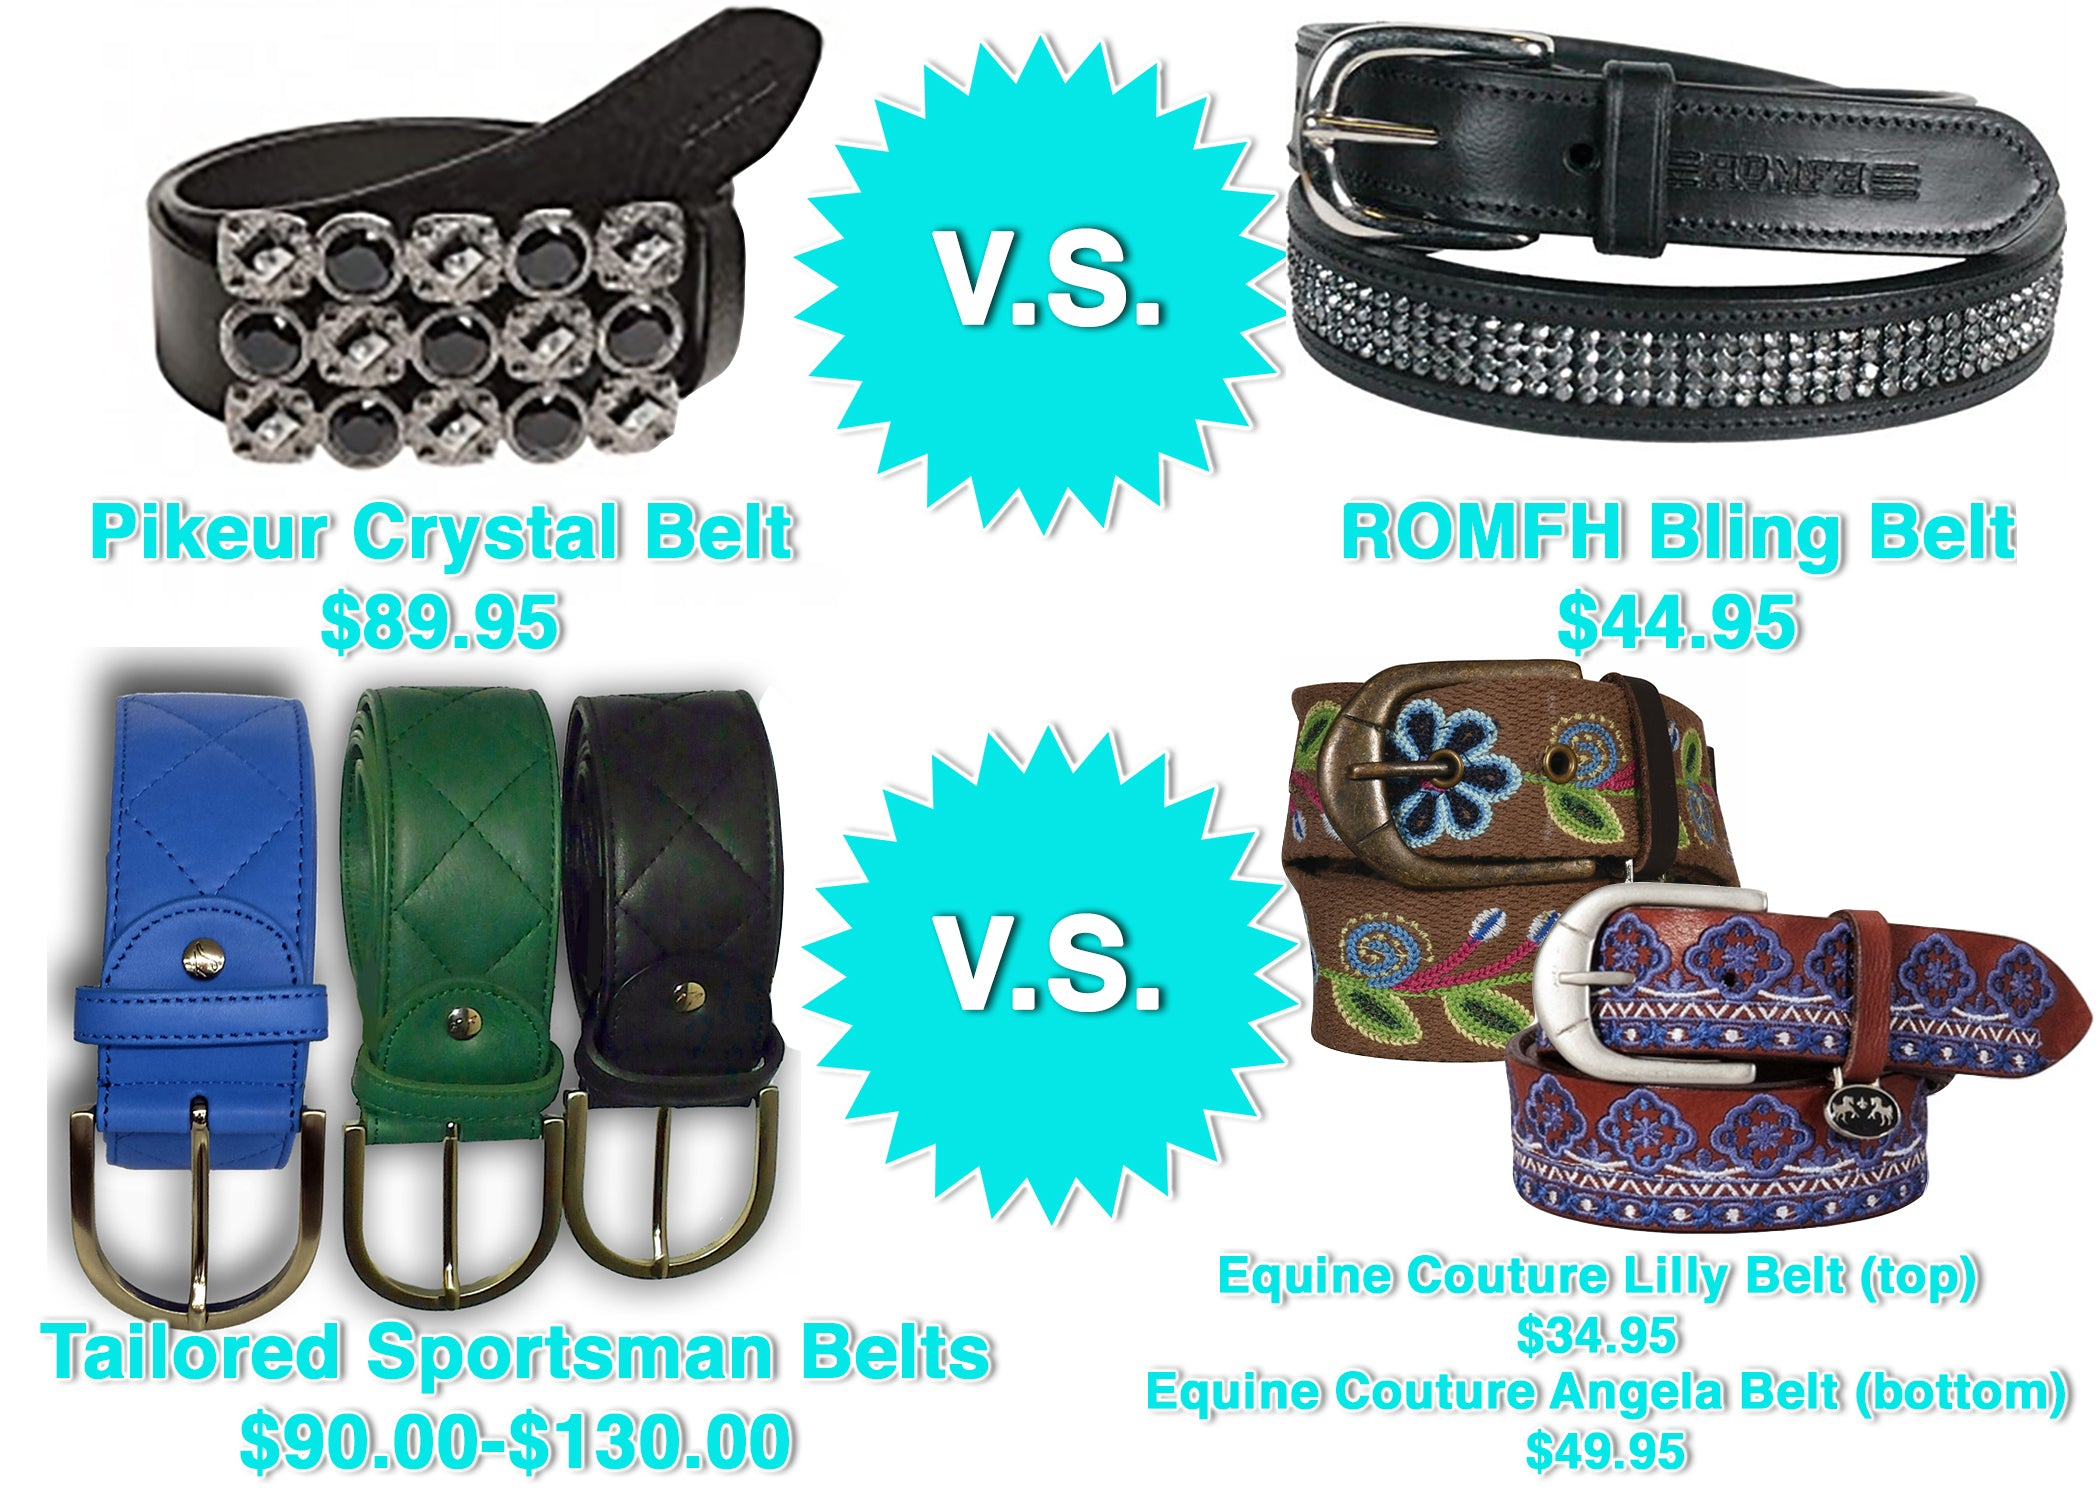 Pikeur and Tailored Sporstman belts